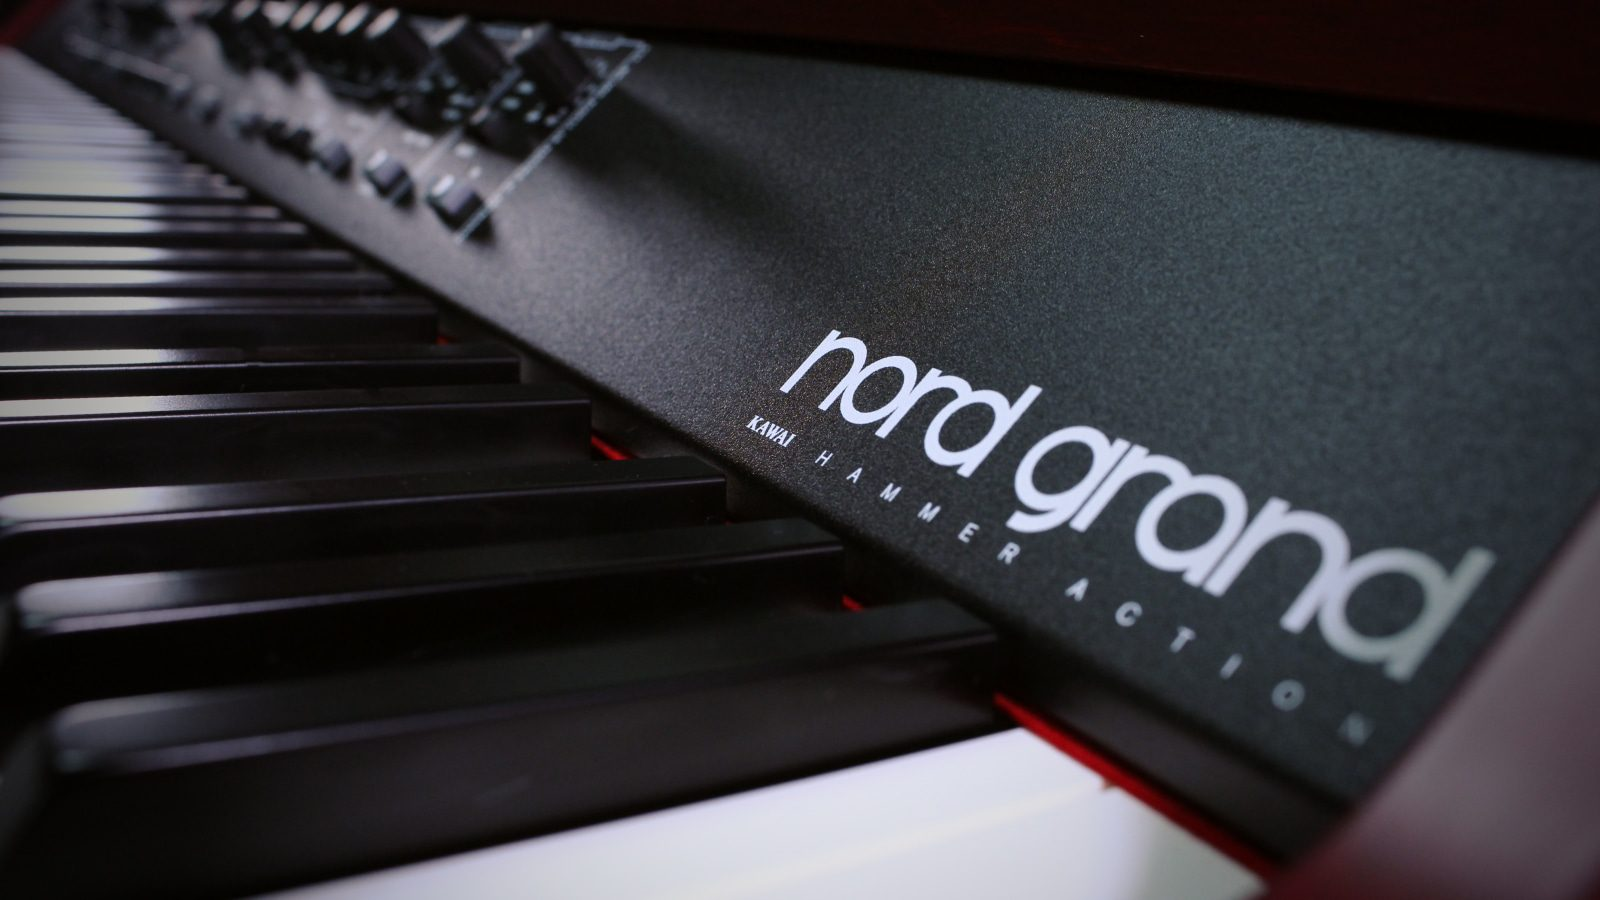 Clavia Nord Grand - Stagepiano der Extraklasse